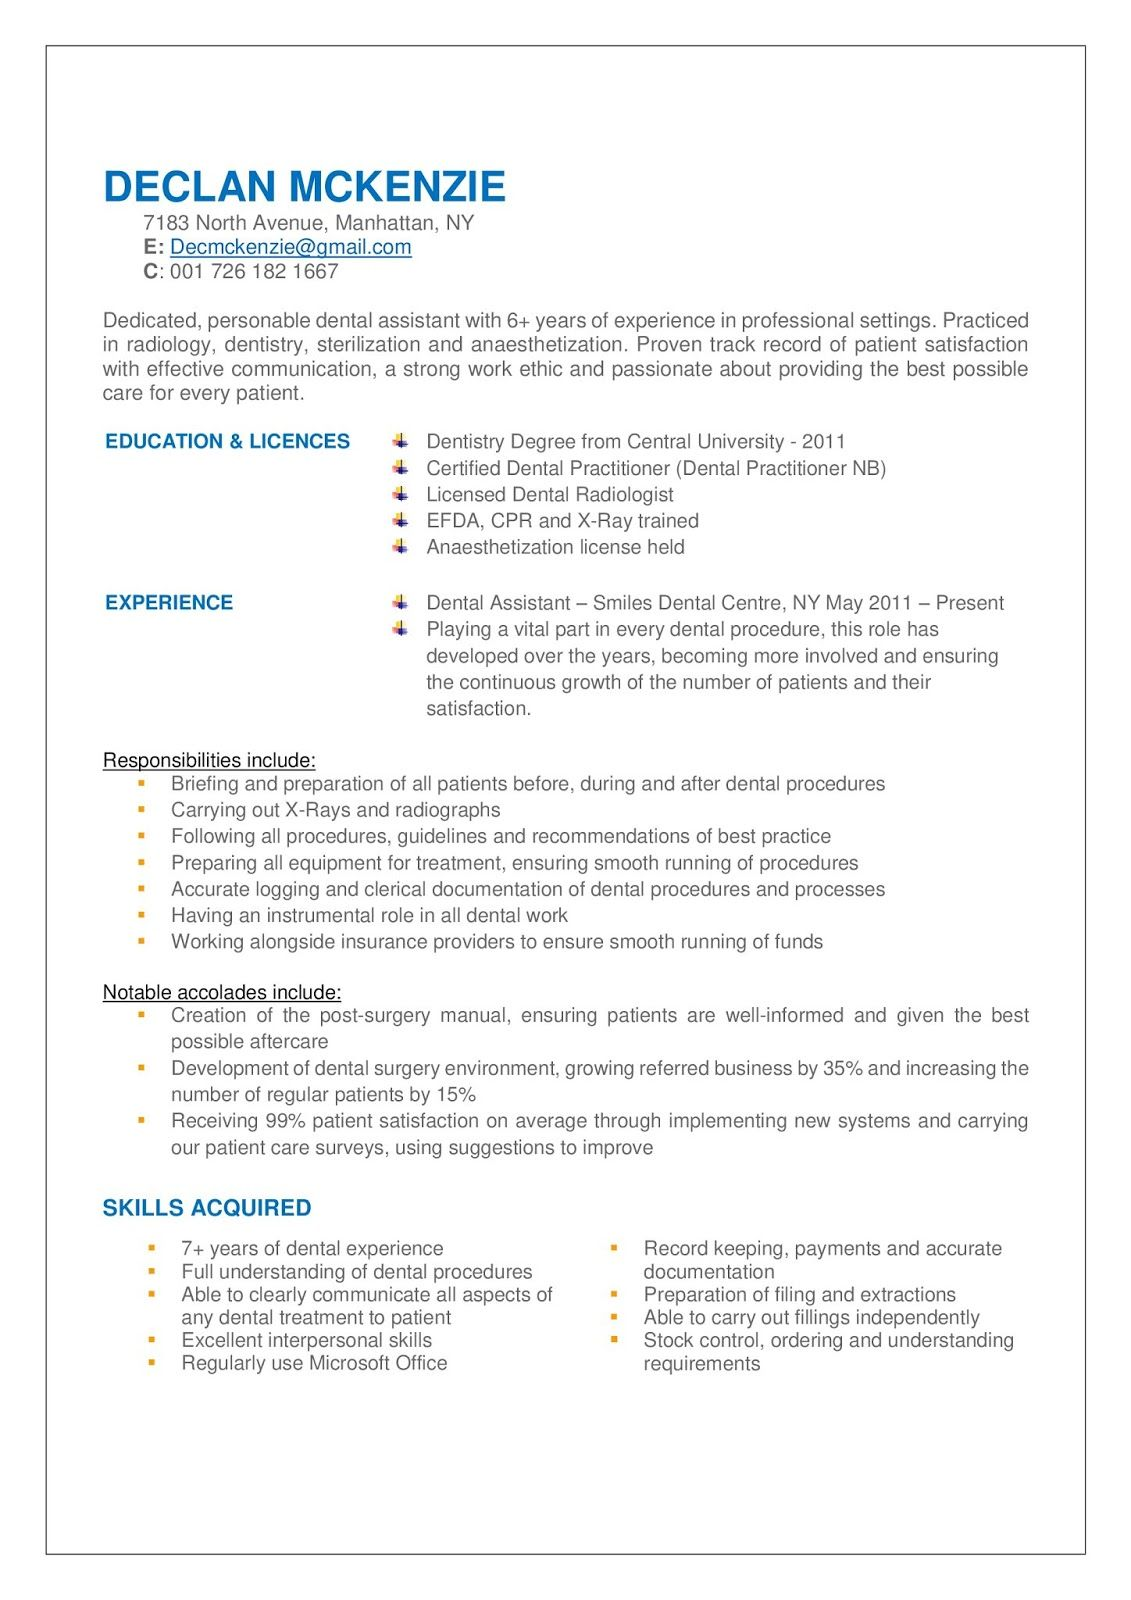 marketing assistant resume example, assistant marketing